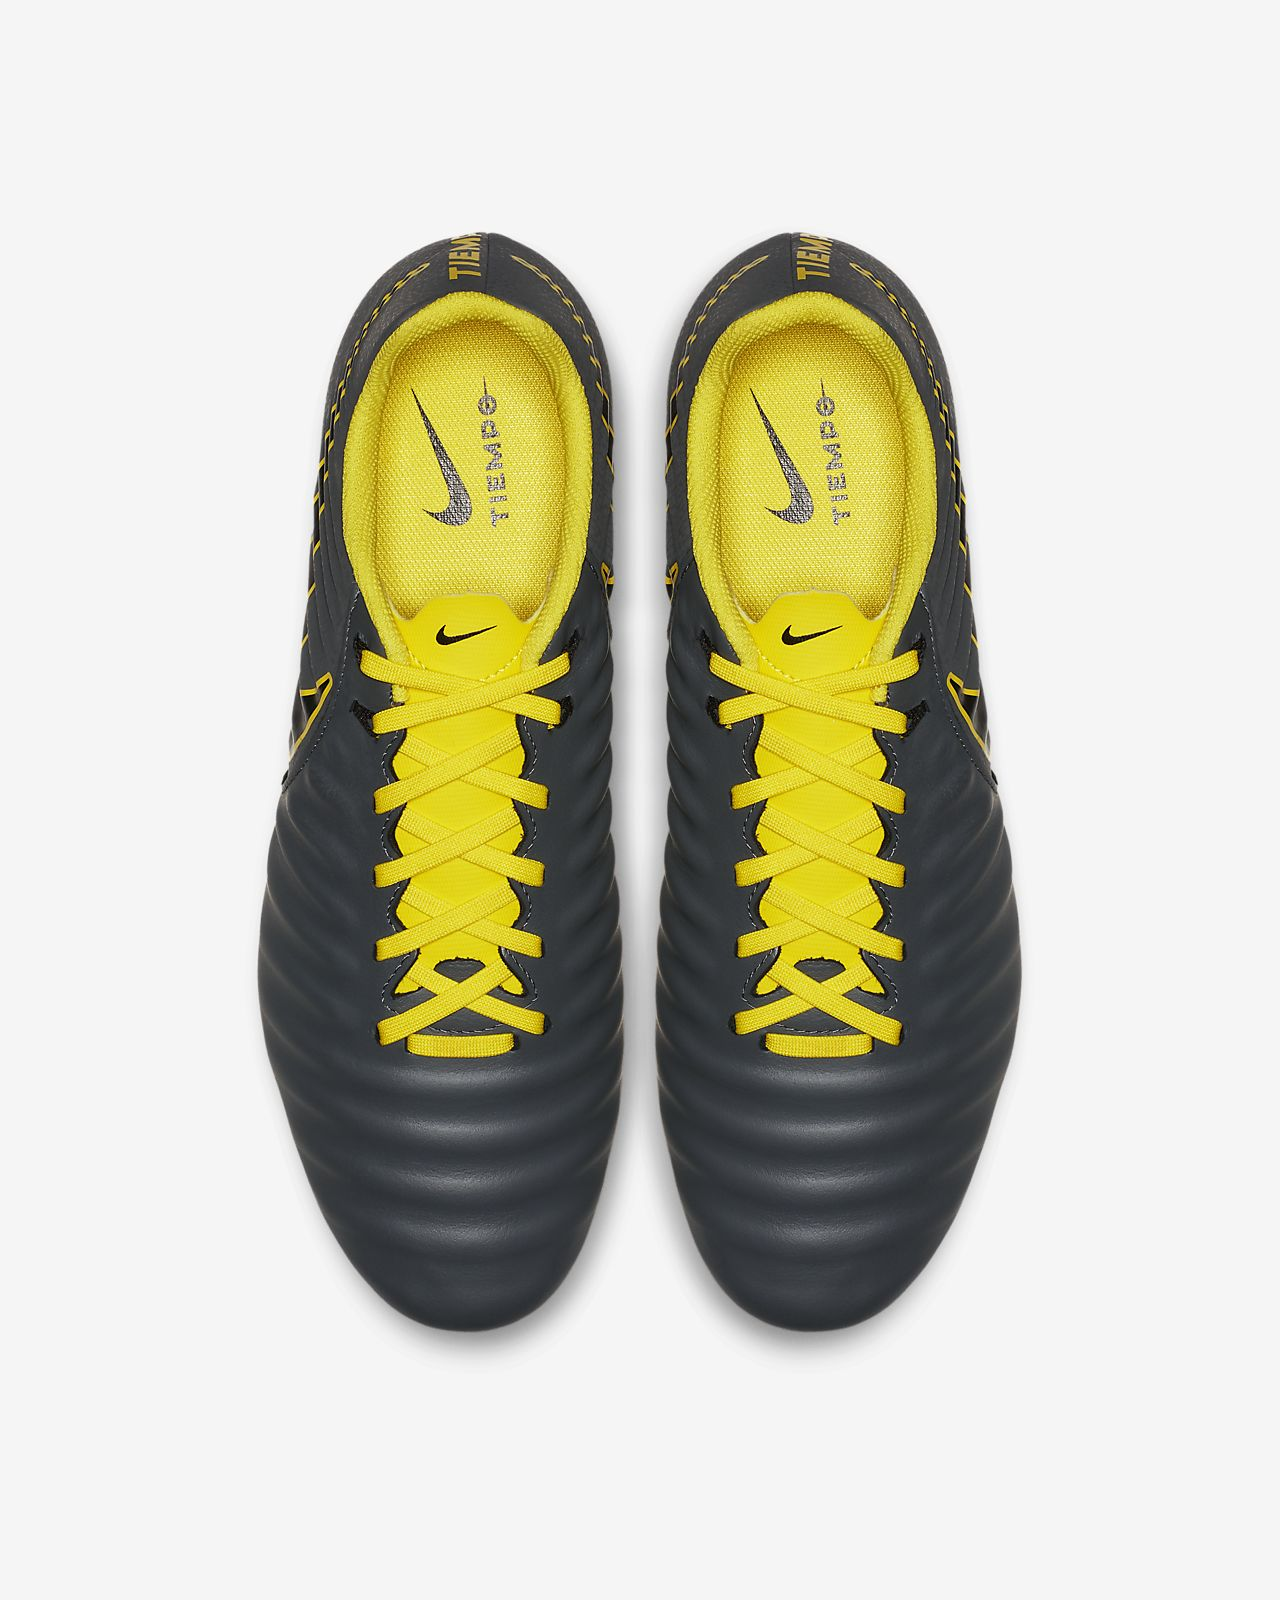 7025a5f82 ... Nike Legend 7 Academy SG-Pro Anti-Clog Traction Soft-Ground Pro Football